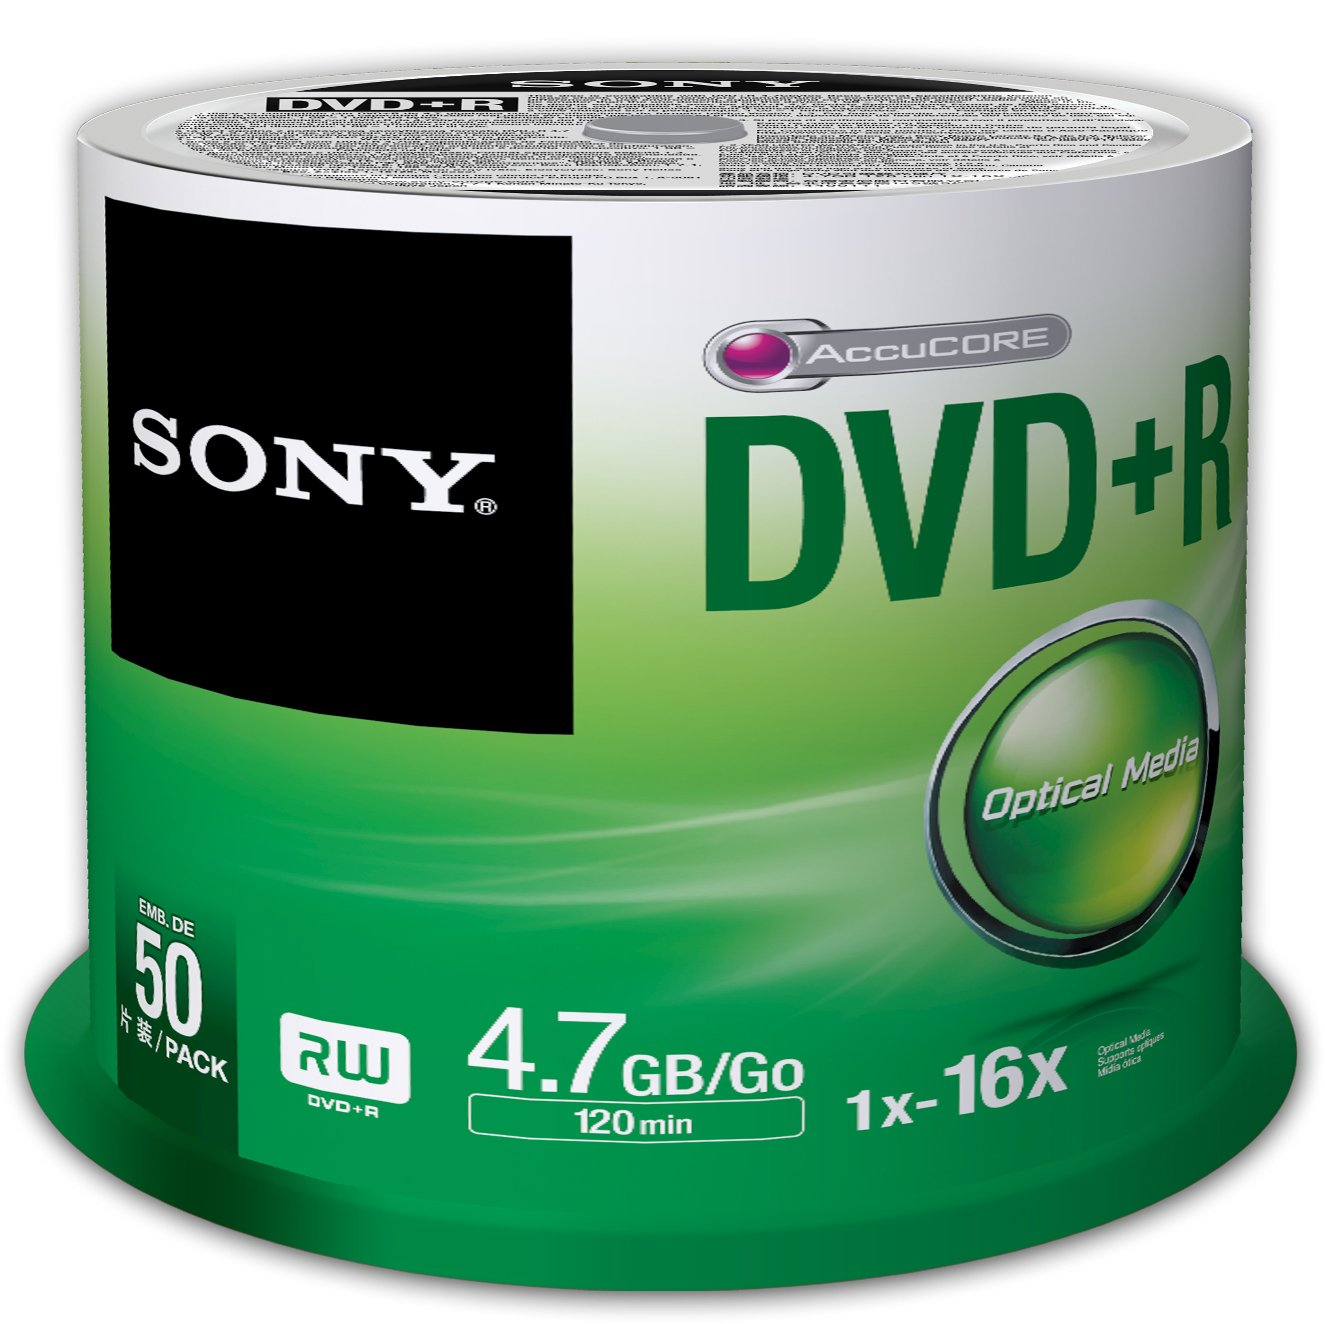 Sony 50DPR47SP 16x DVD+R 4.7GB Recordable DVD Media - 50 Pack Spindle by Sony